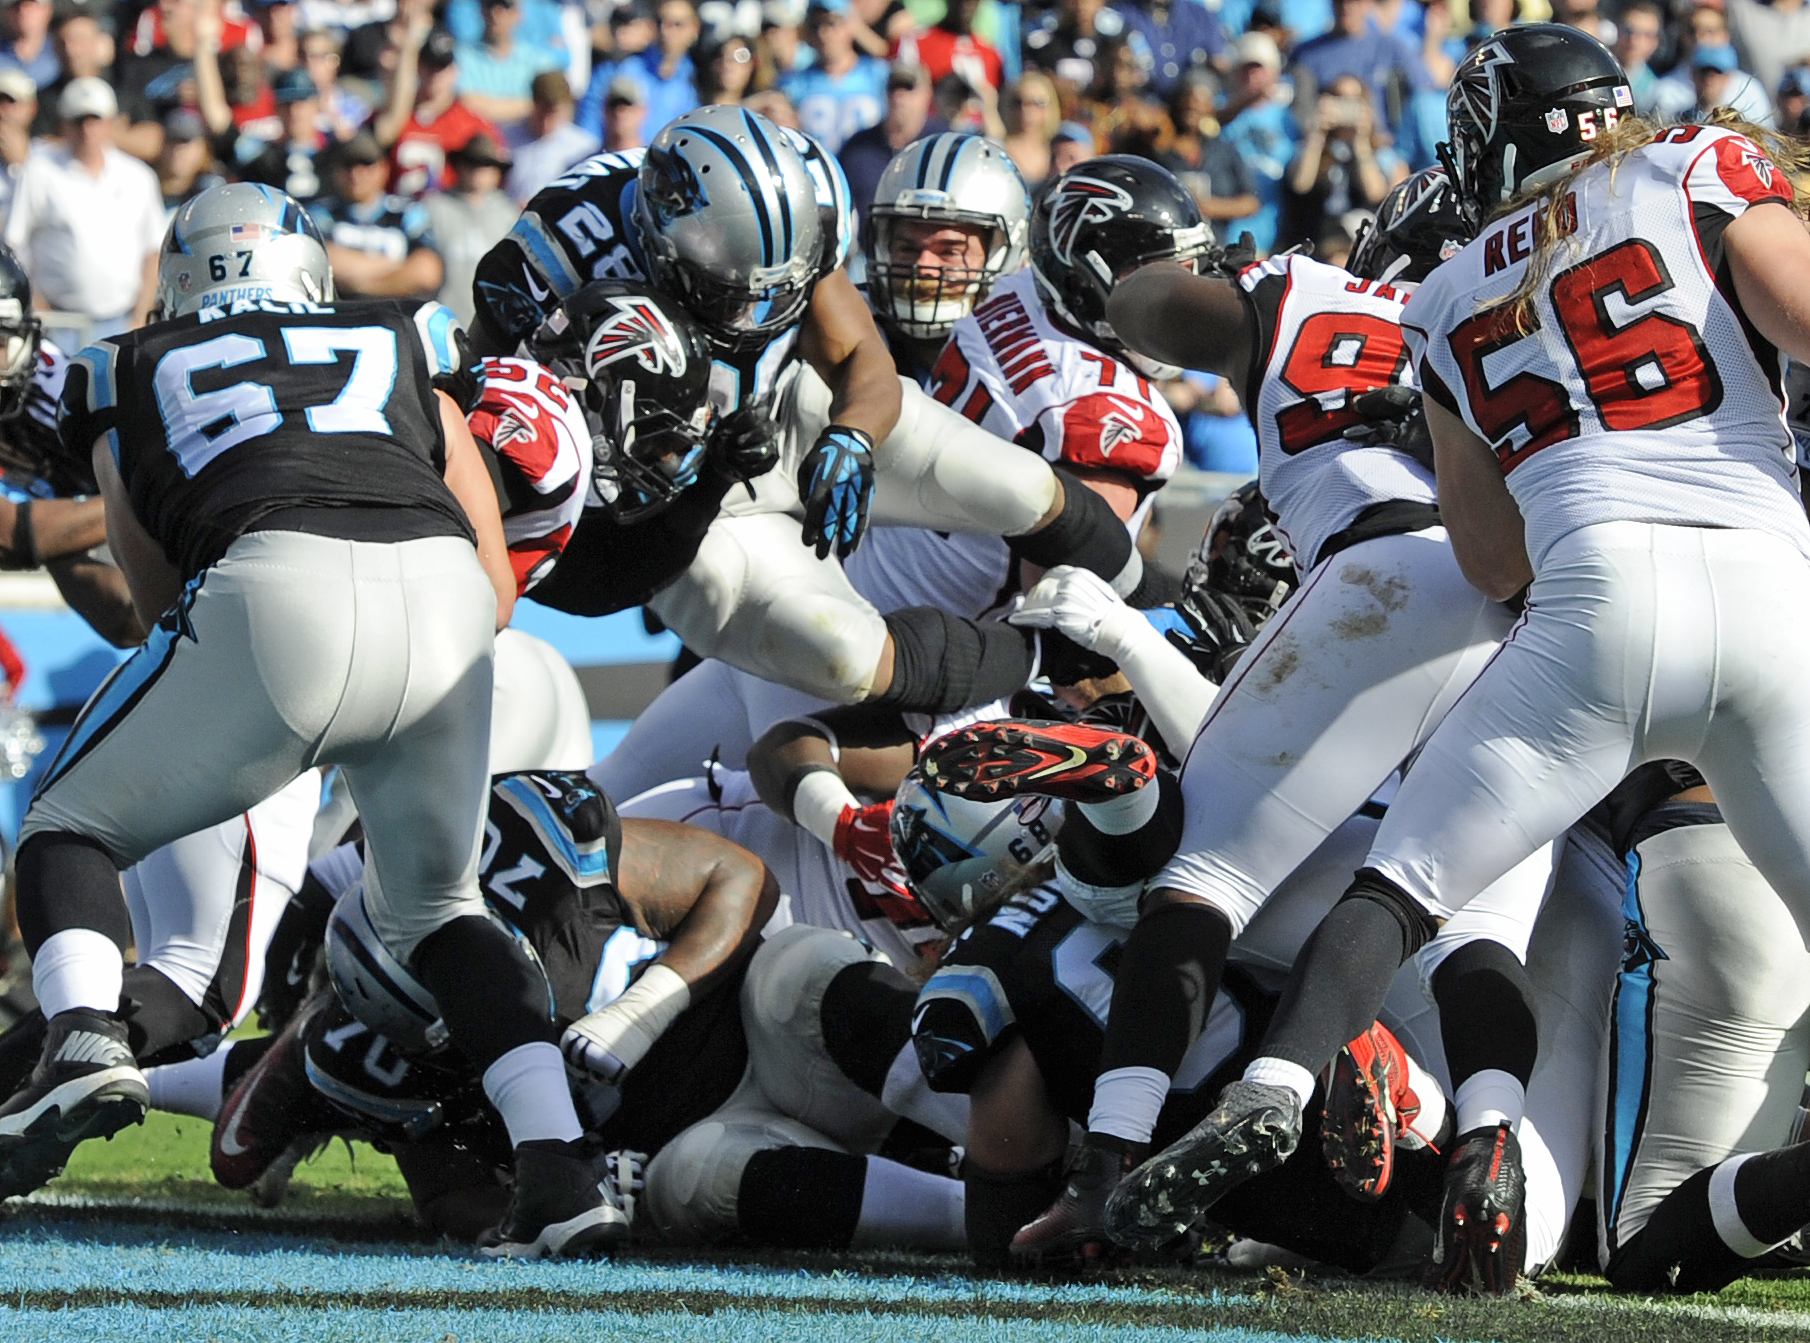 Carolina Panthers' Jonathan Stewart (28) dives into the end zone for a touchdown against the Atlanta Falcons in the first half of an NFL football game in Charlotte, N.C., Sunday, Dec. 13, 2015. (AP Photo/Mike McCarn)